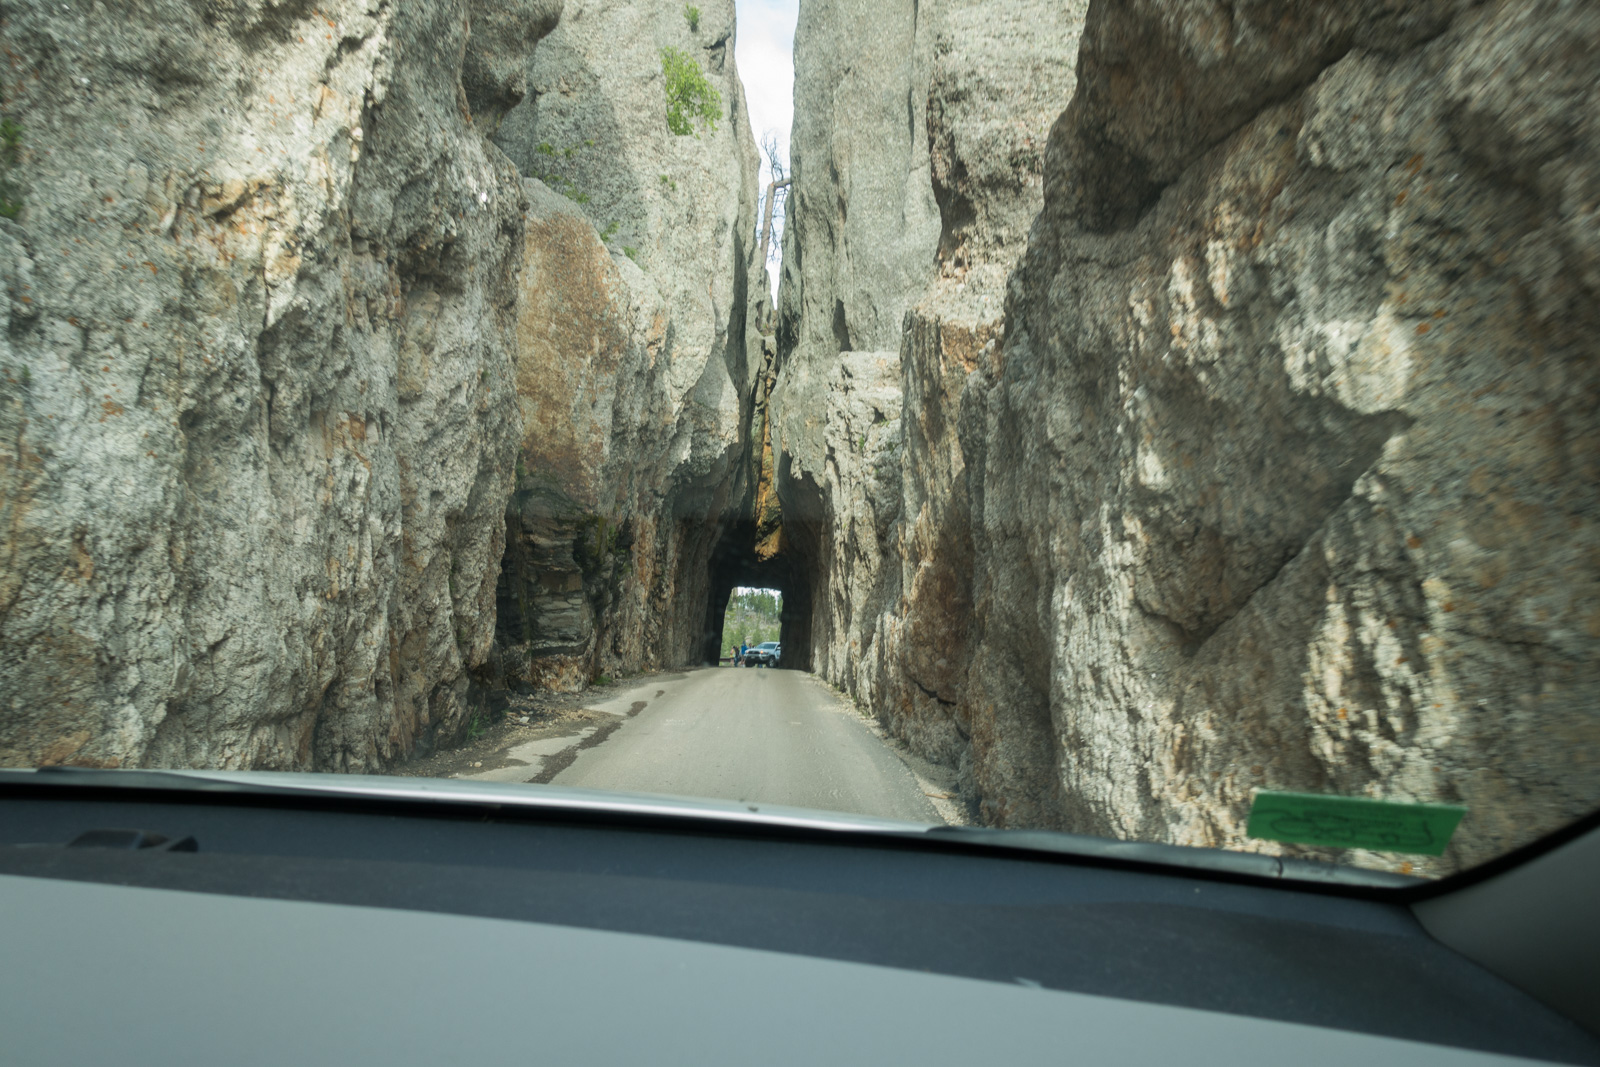 View of the Needles Tunnel through the windshield.